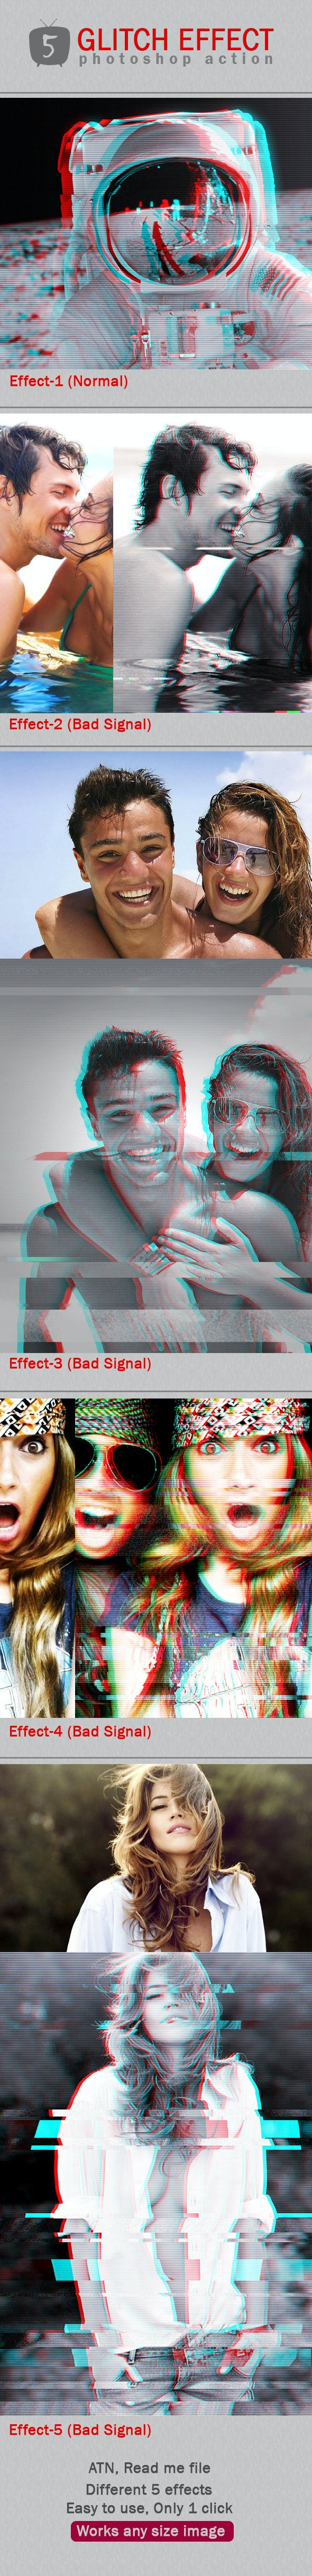 Glitch PS Effects - Photo Effects Actions